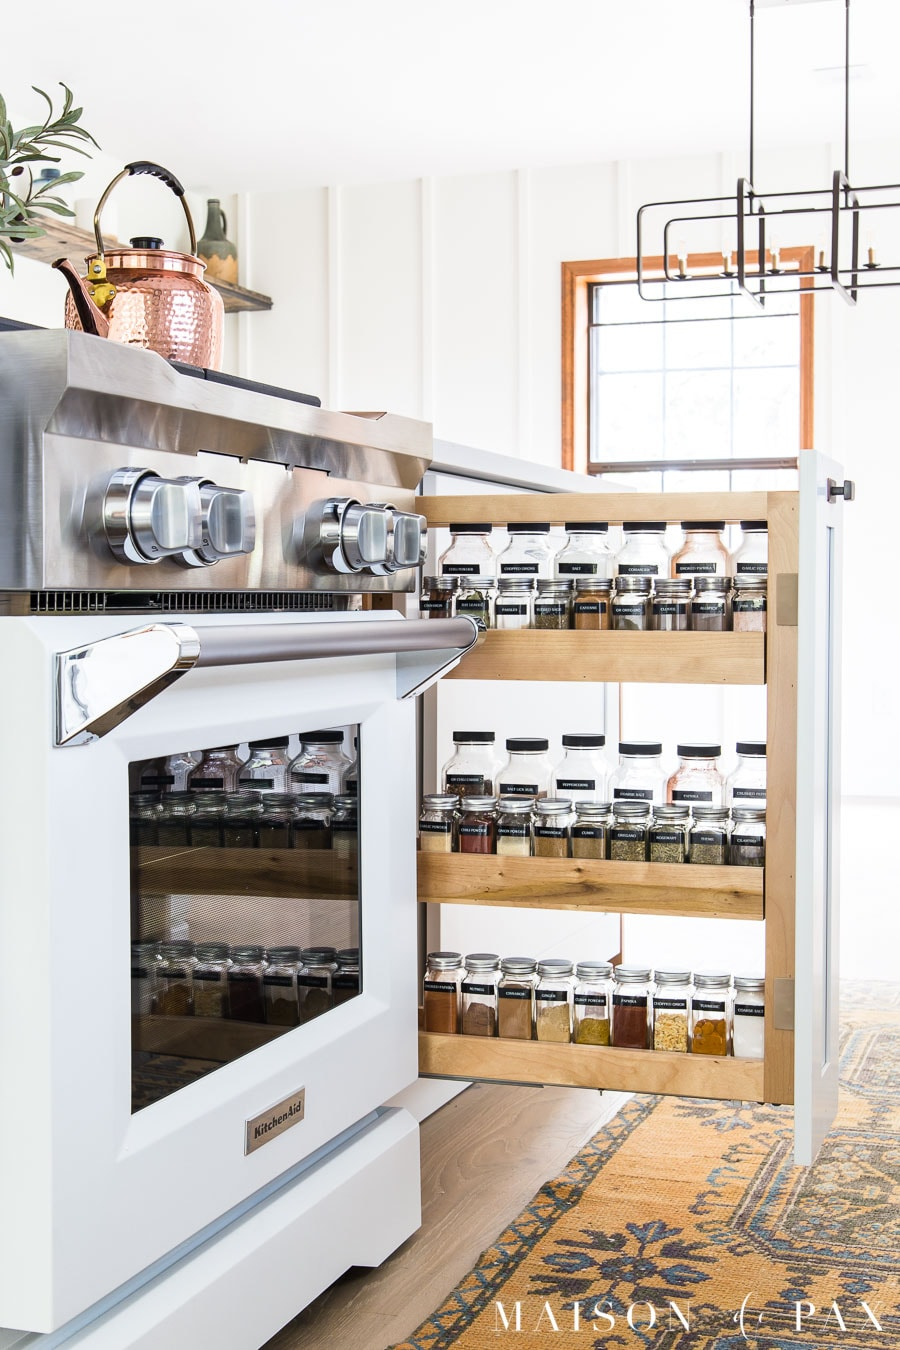 organized spice pull out drawer | Maison de Pax